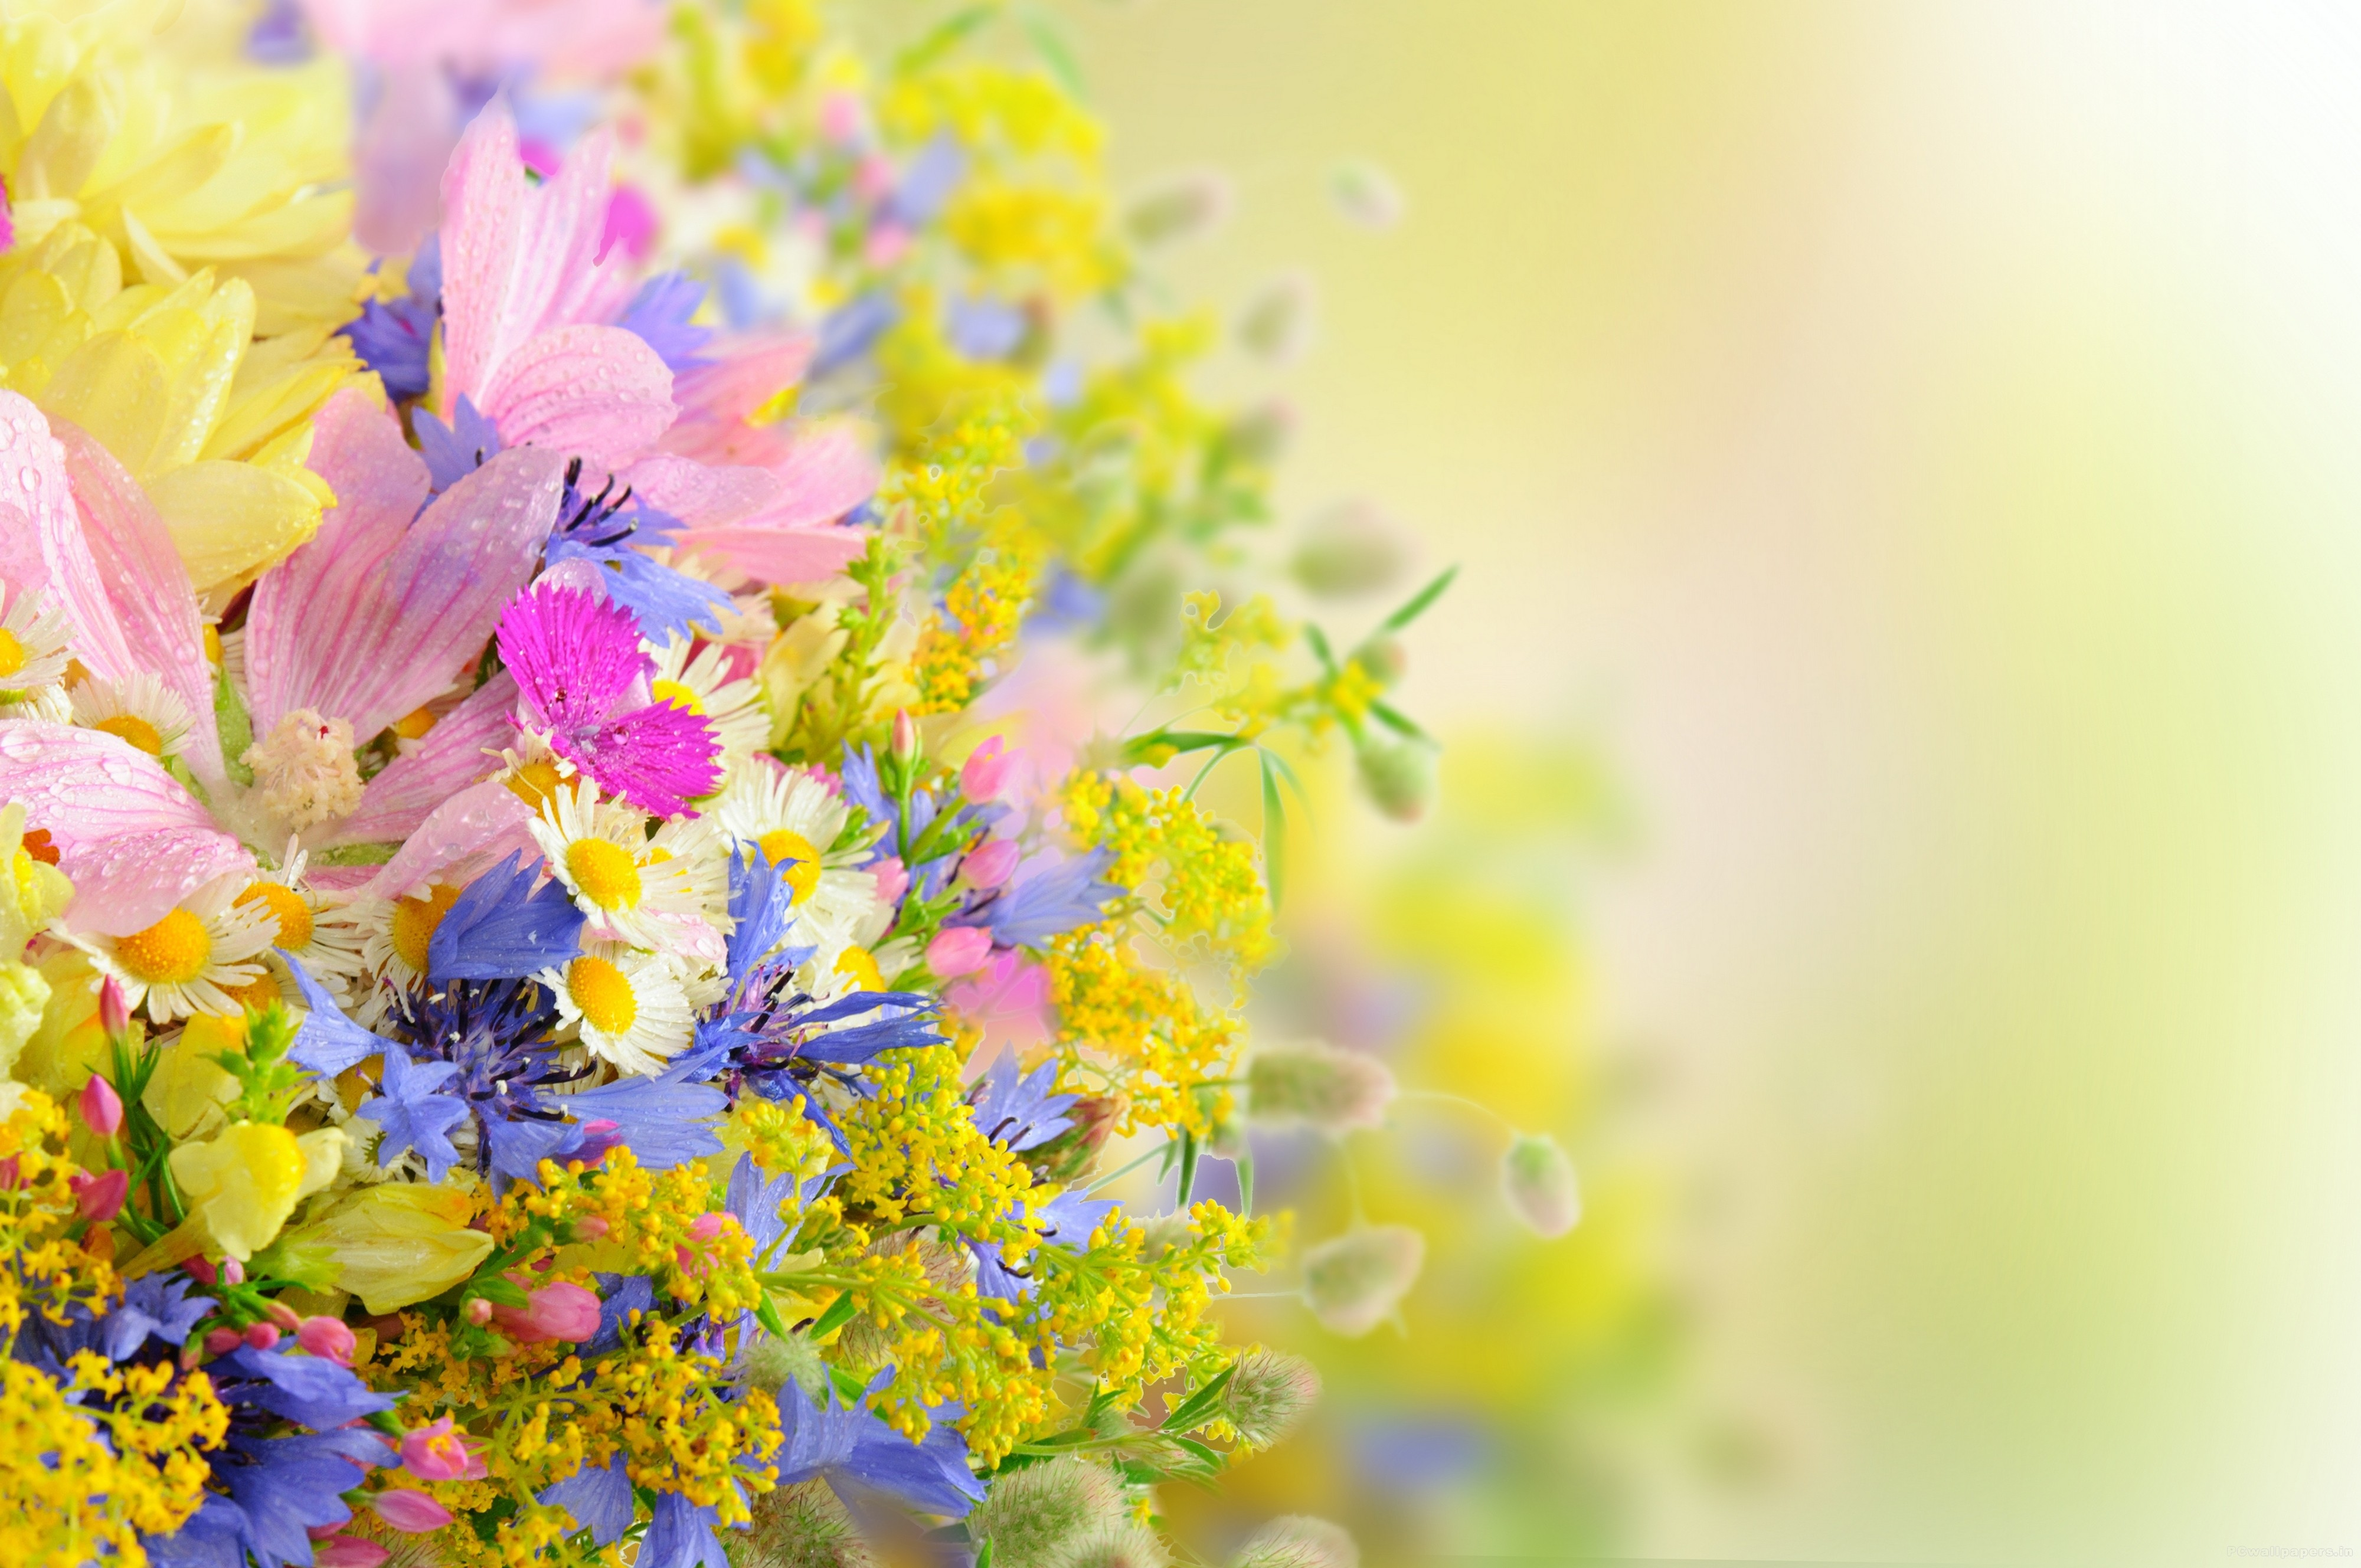 Flowers Backgrounds In High Quality Pretty 4000x2657